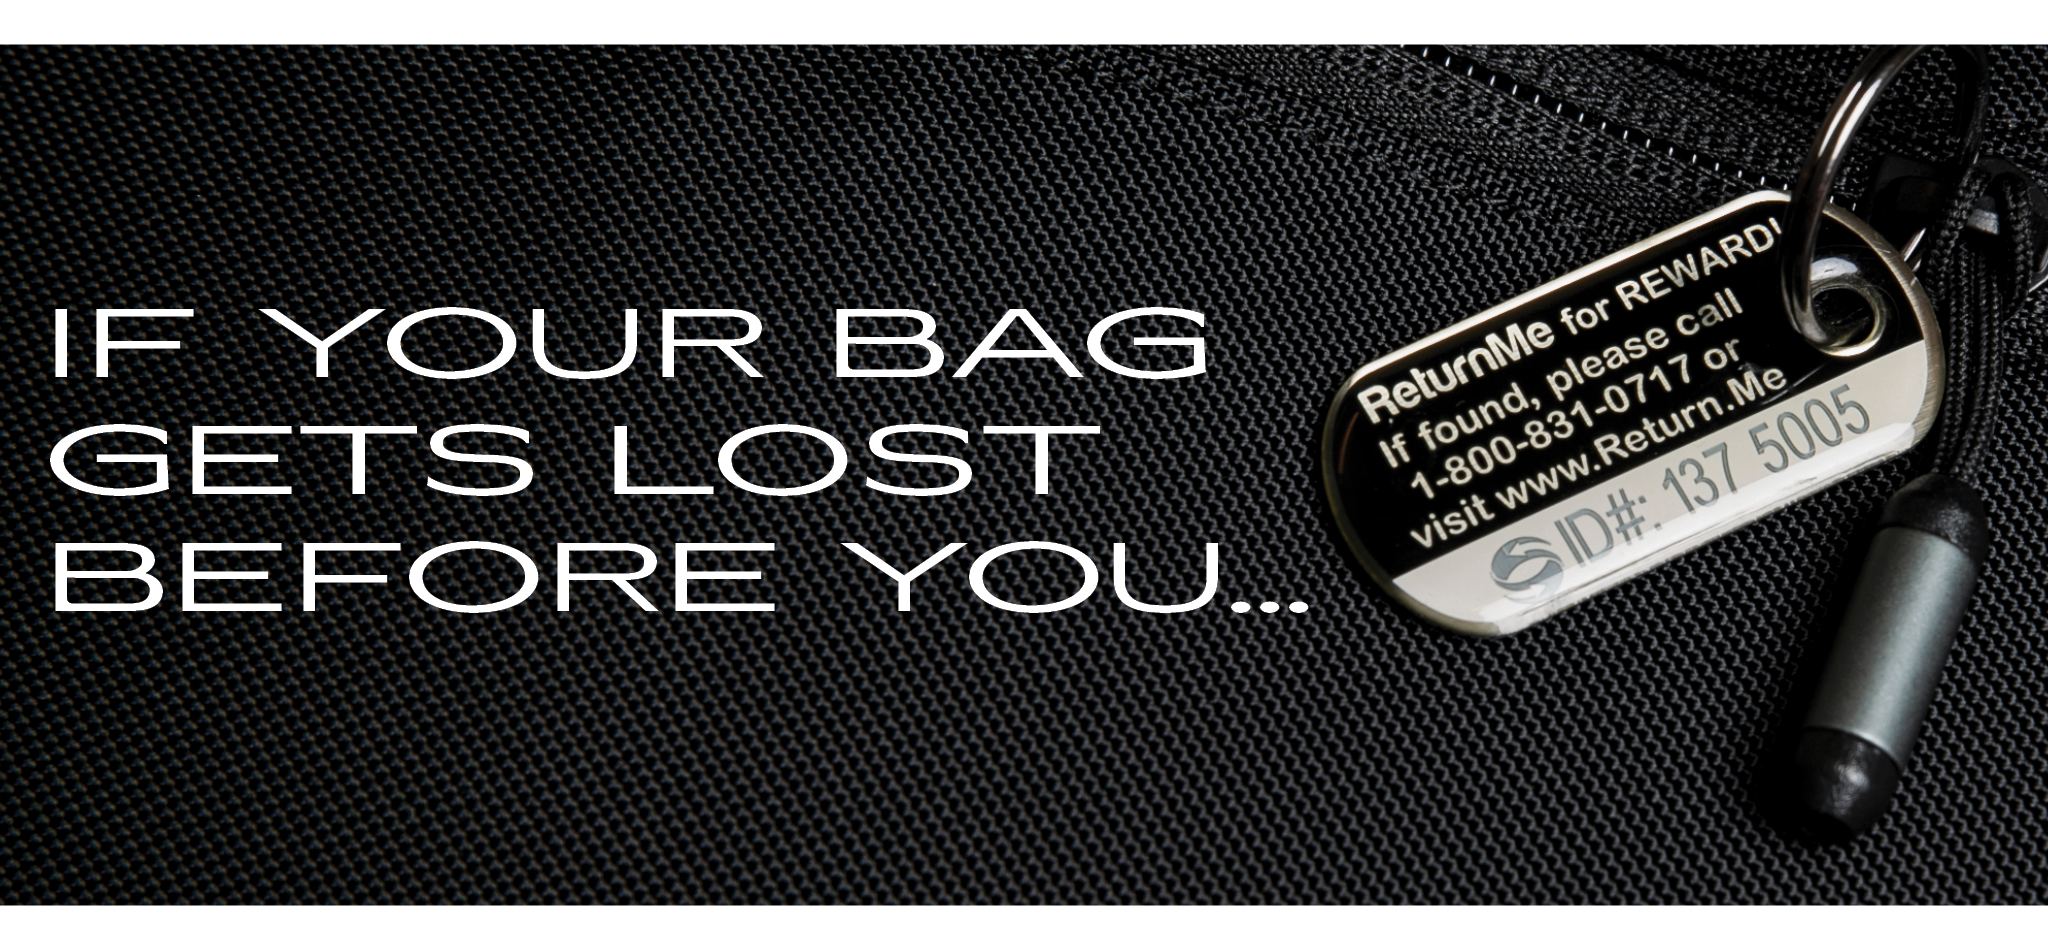 If your bag gets lost